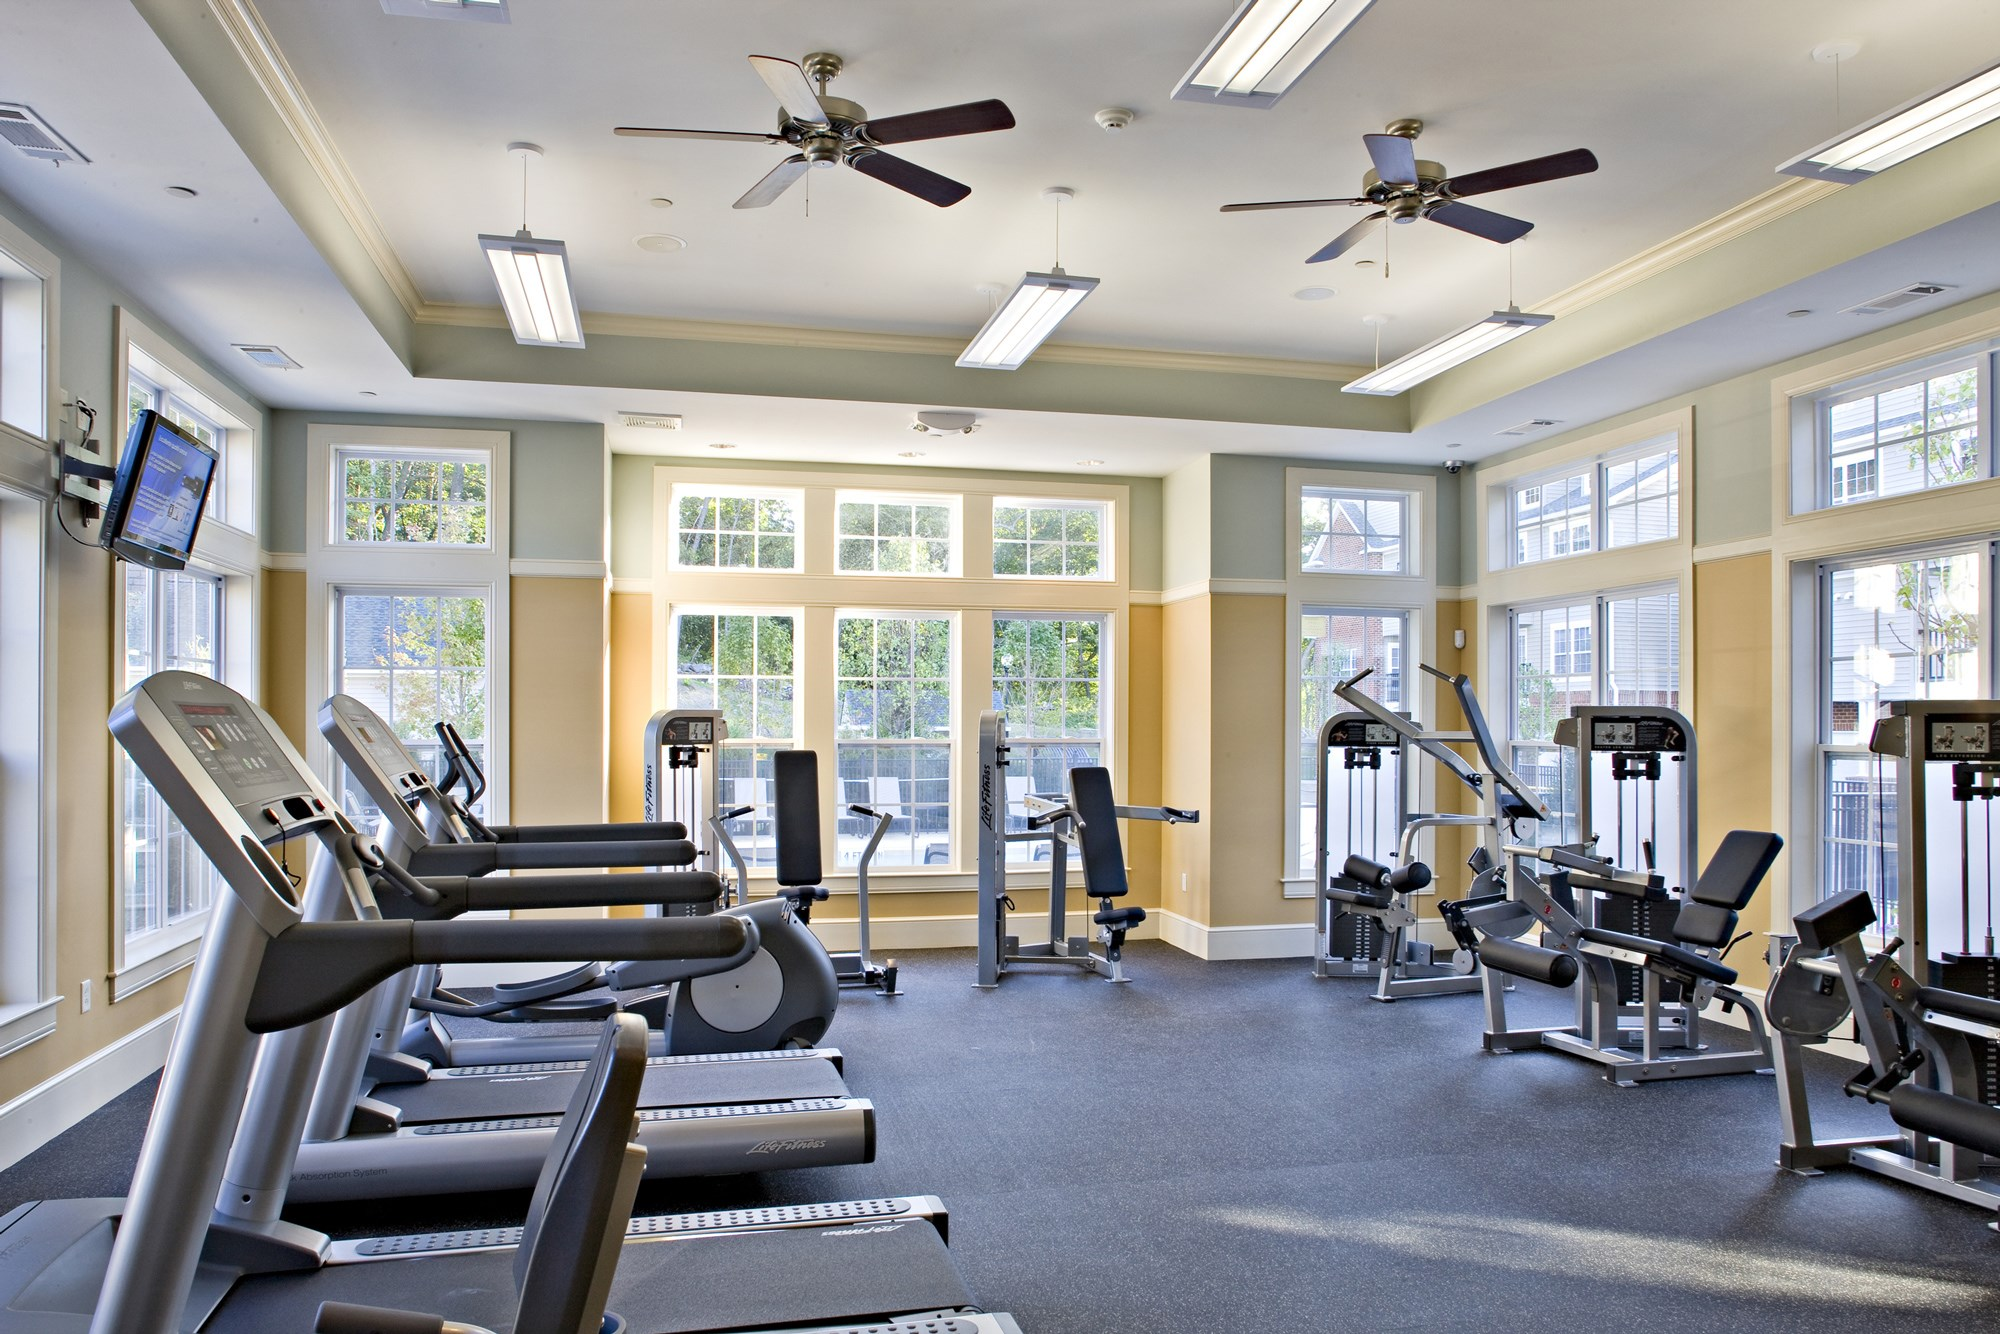 Fitness Center at Huntington Townhomes in Shelton, CT